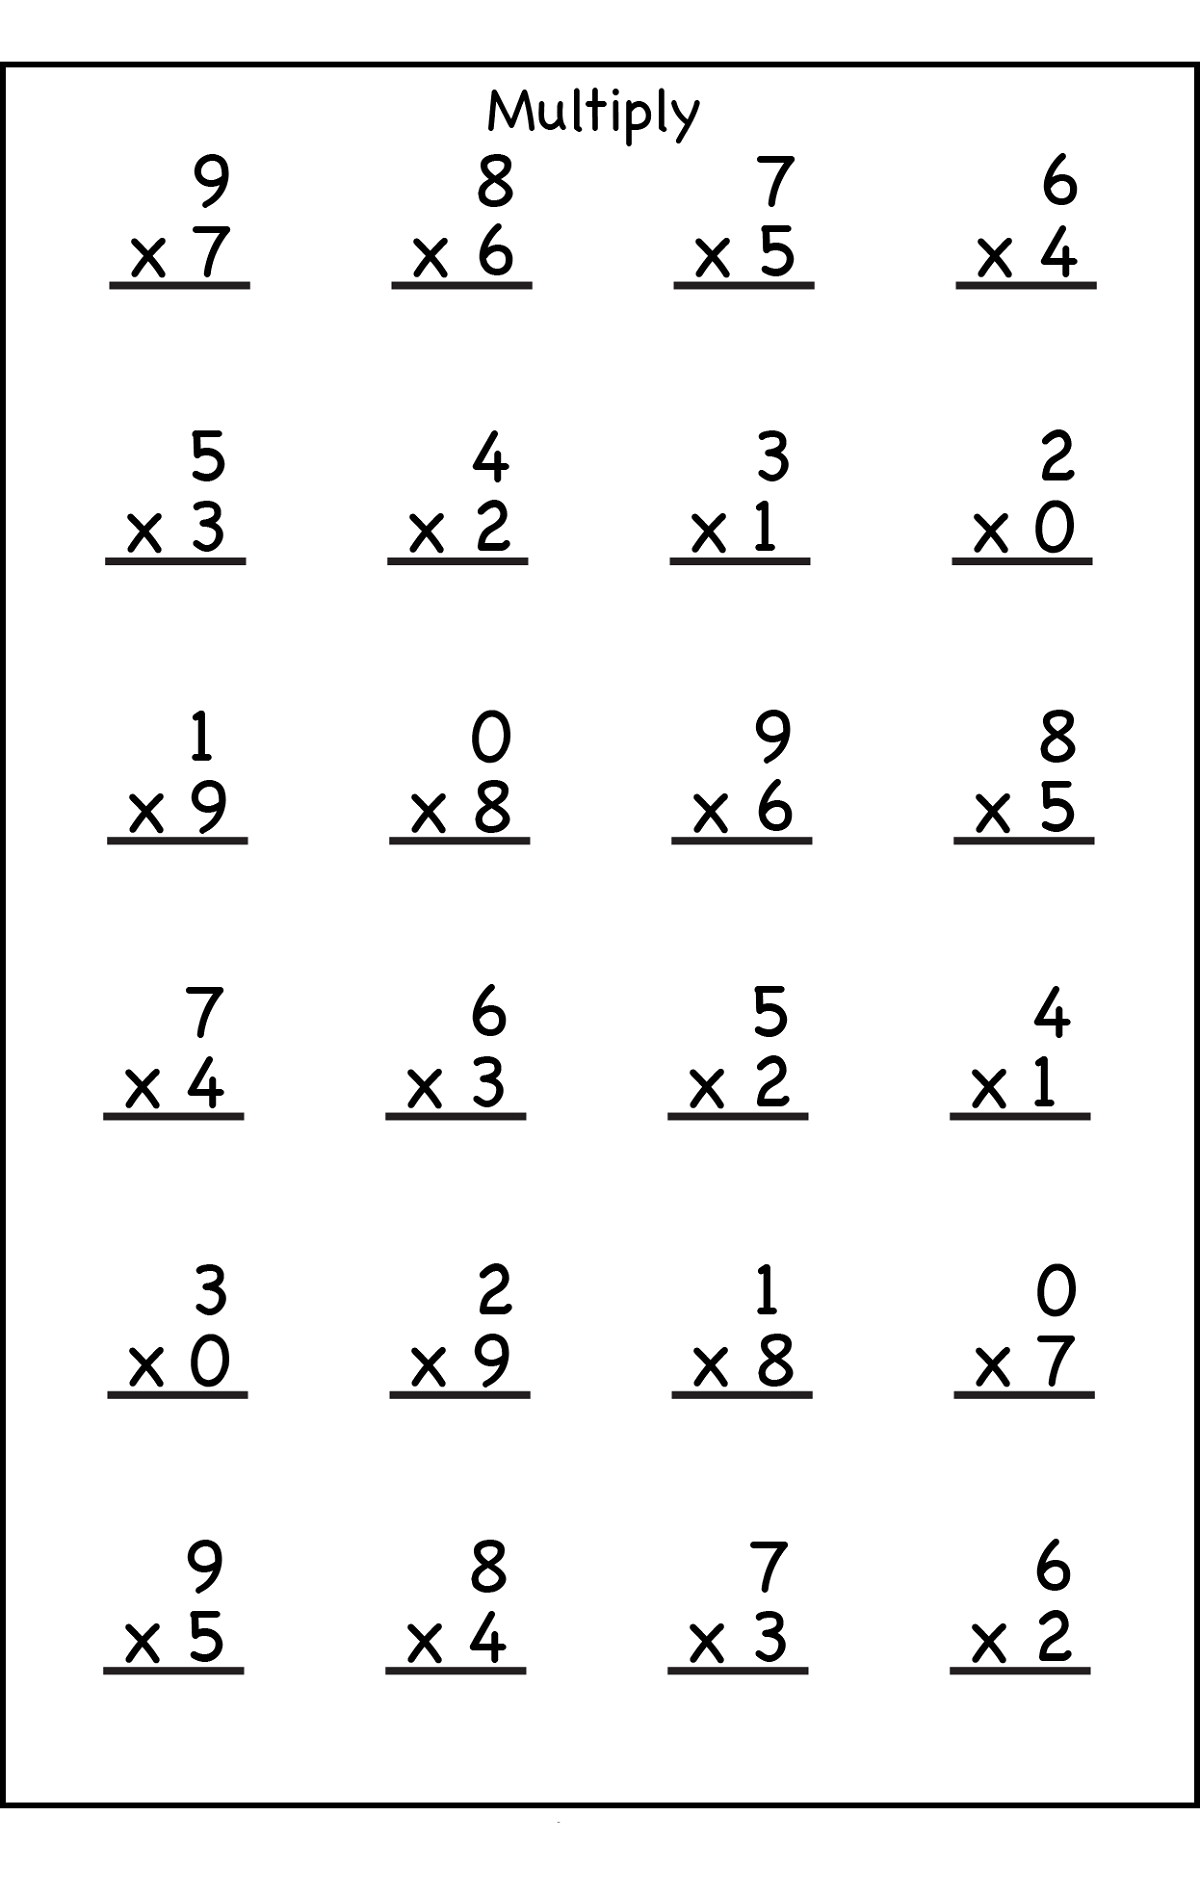 Multiplication Worksheet for 3rd Grade